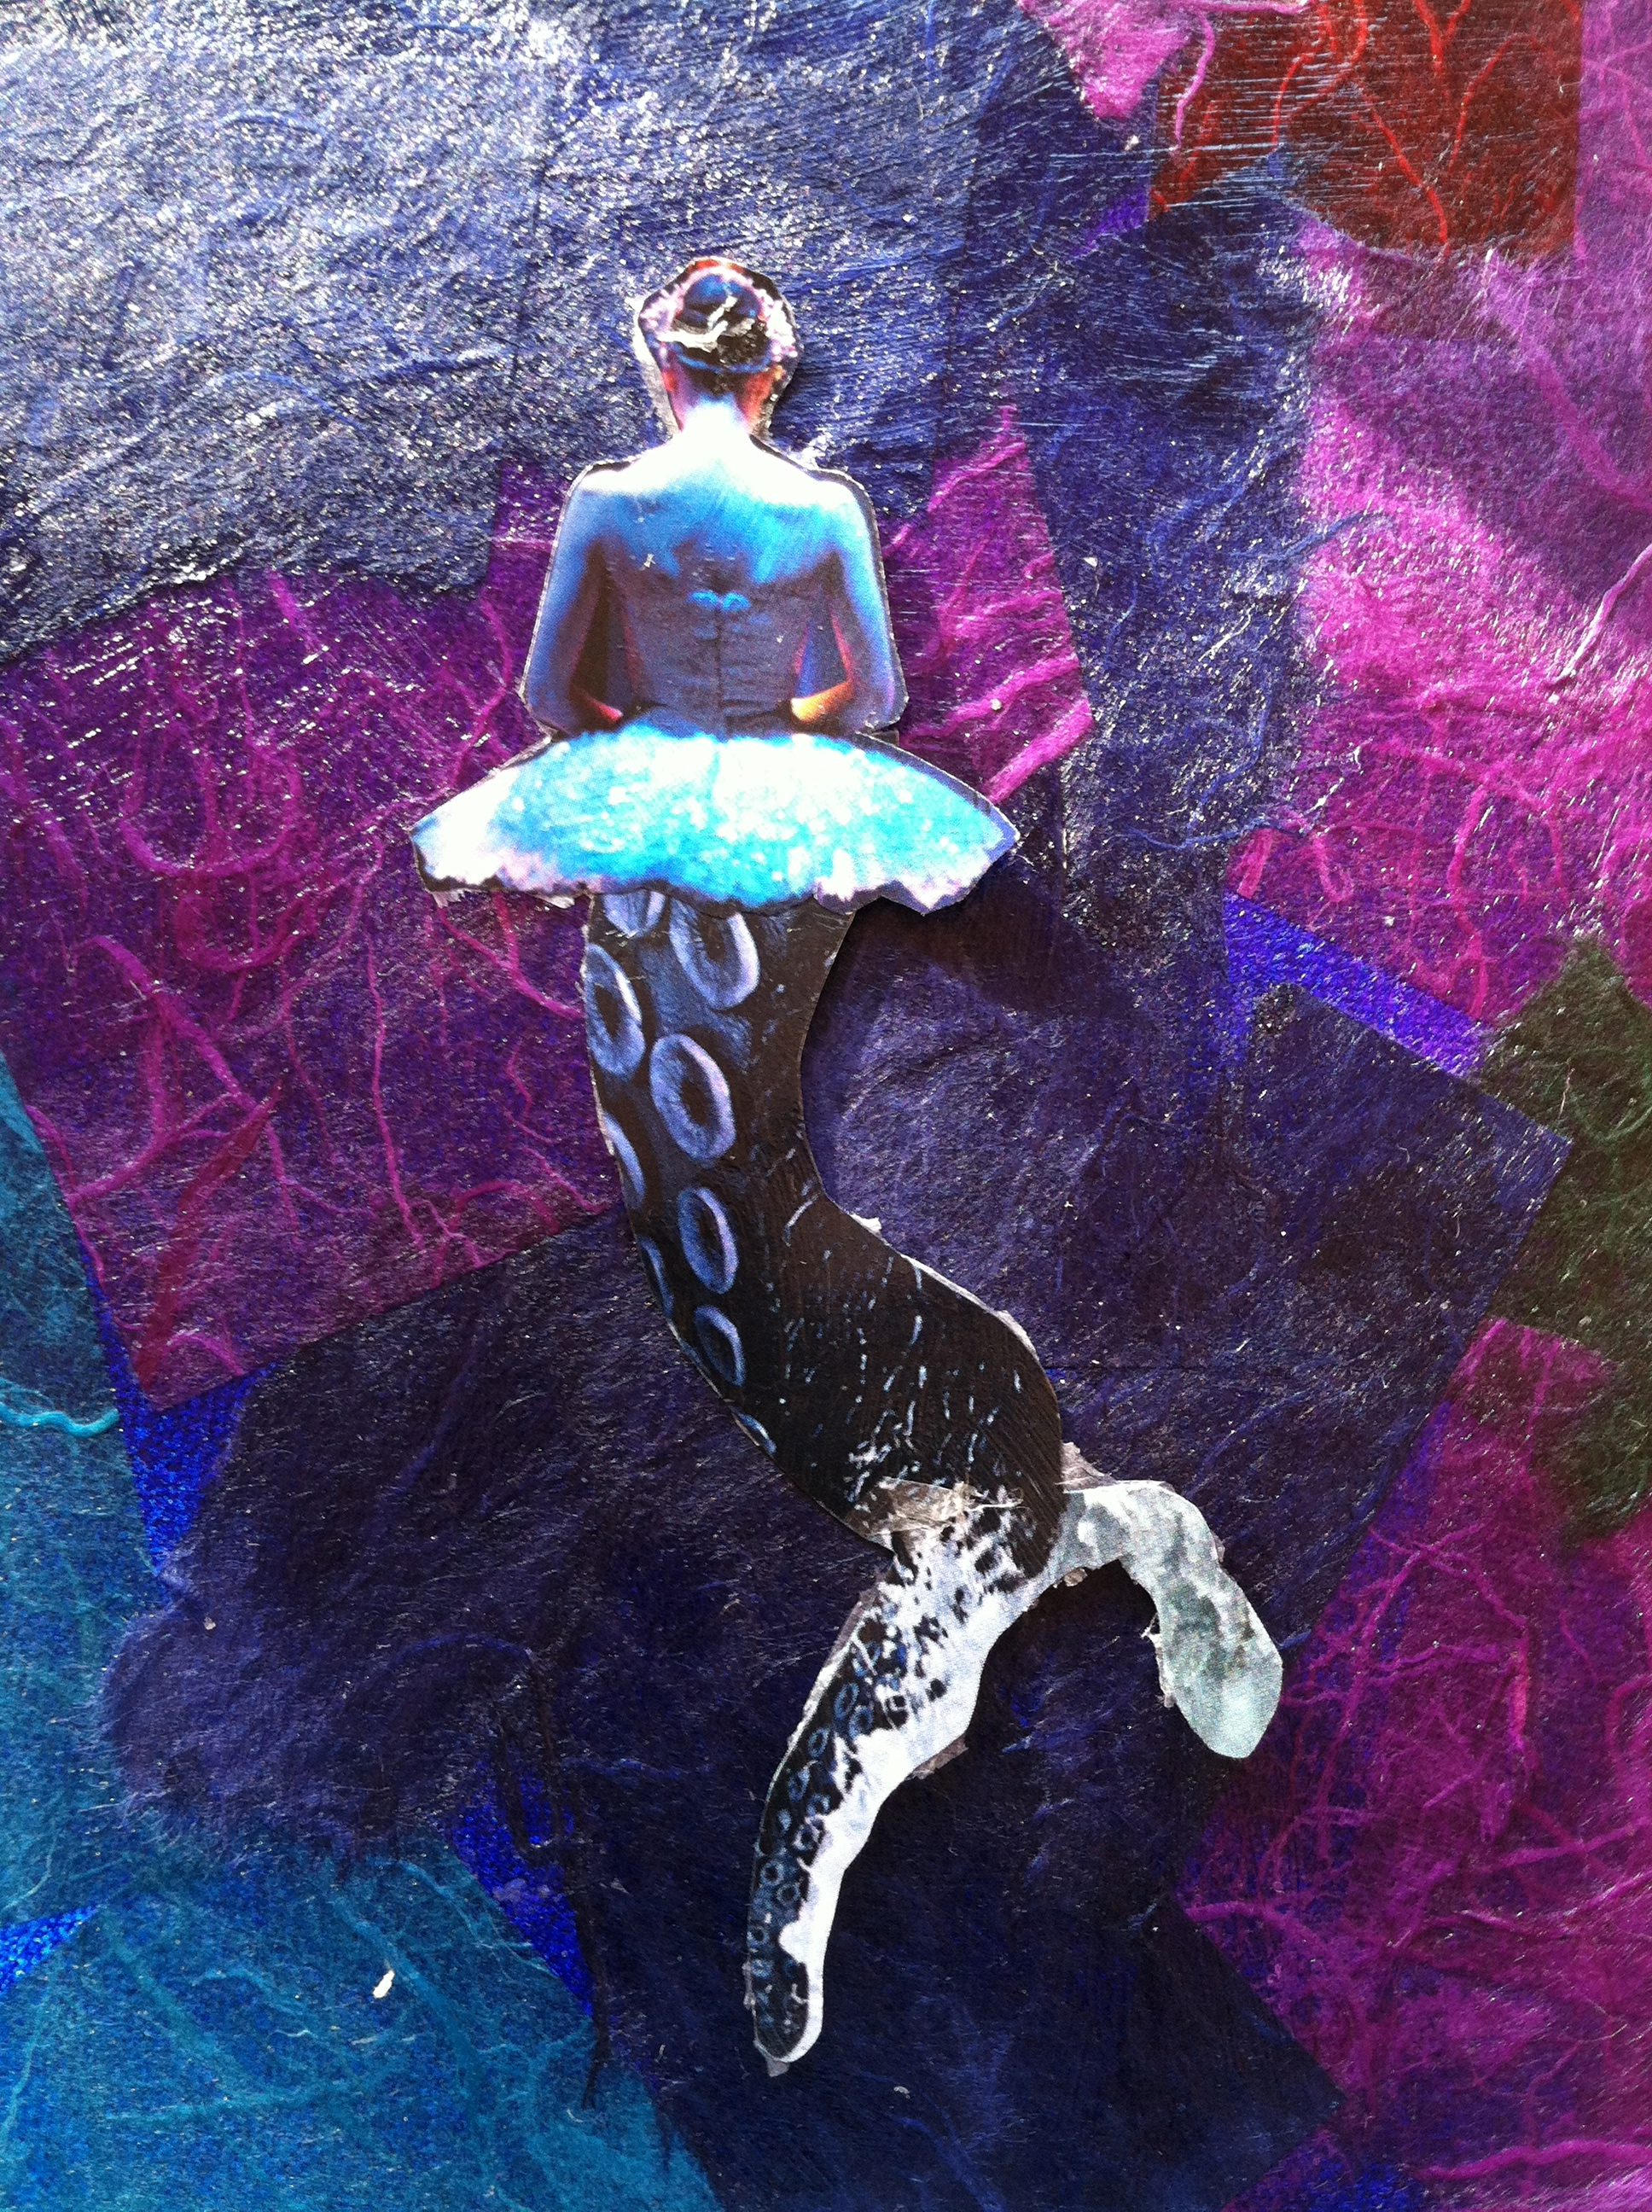 Collage-Art-Mermaid-Ballerina